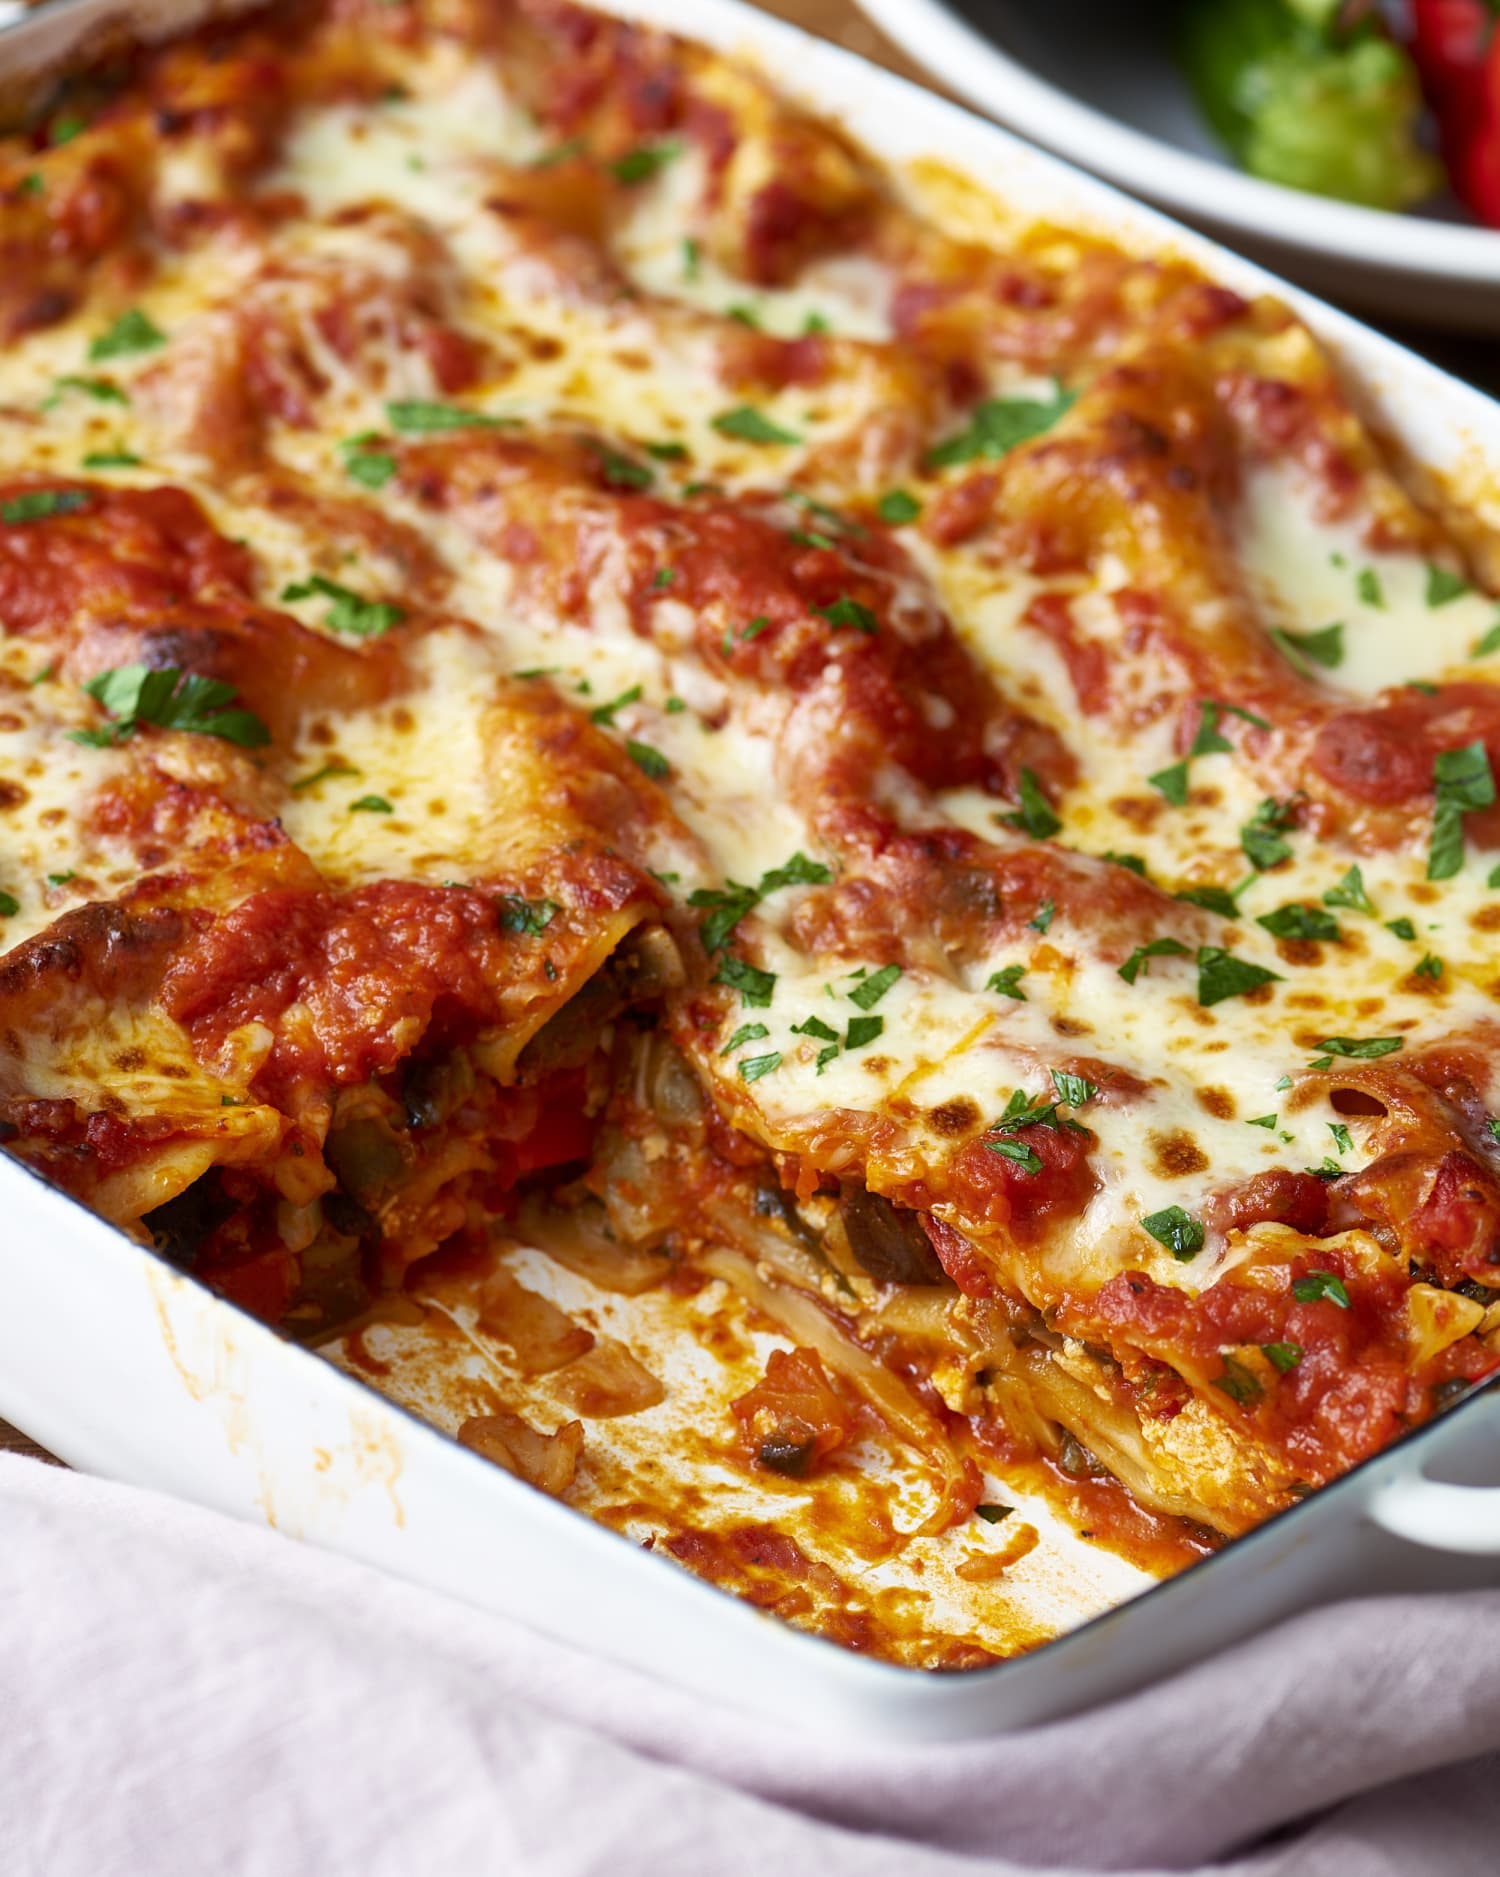 This Lasagna Has a Zucchini Lattice (and It's Stunning)